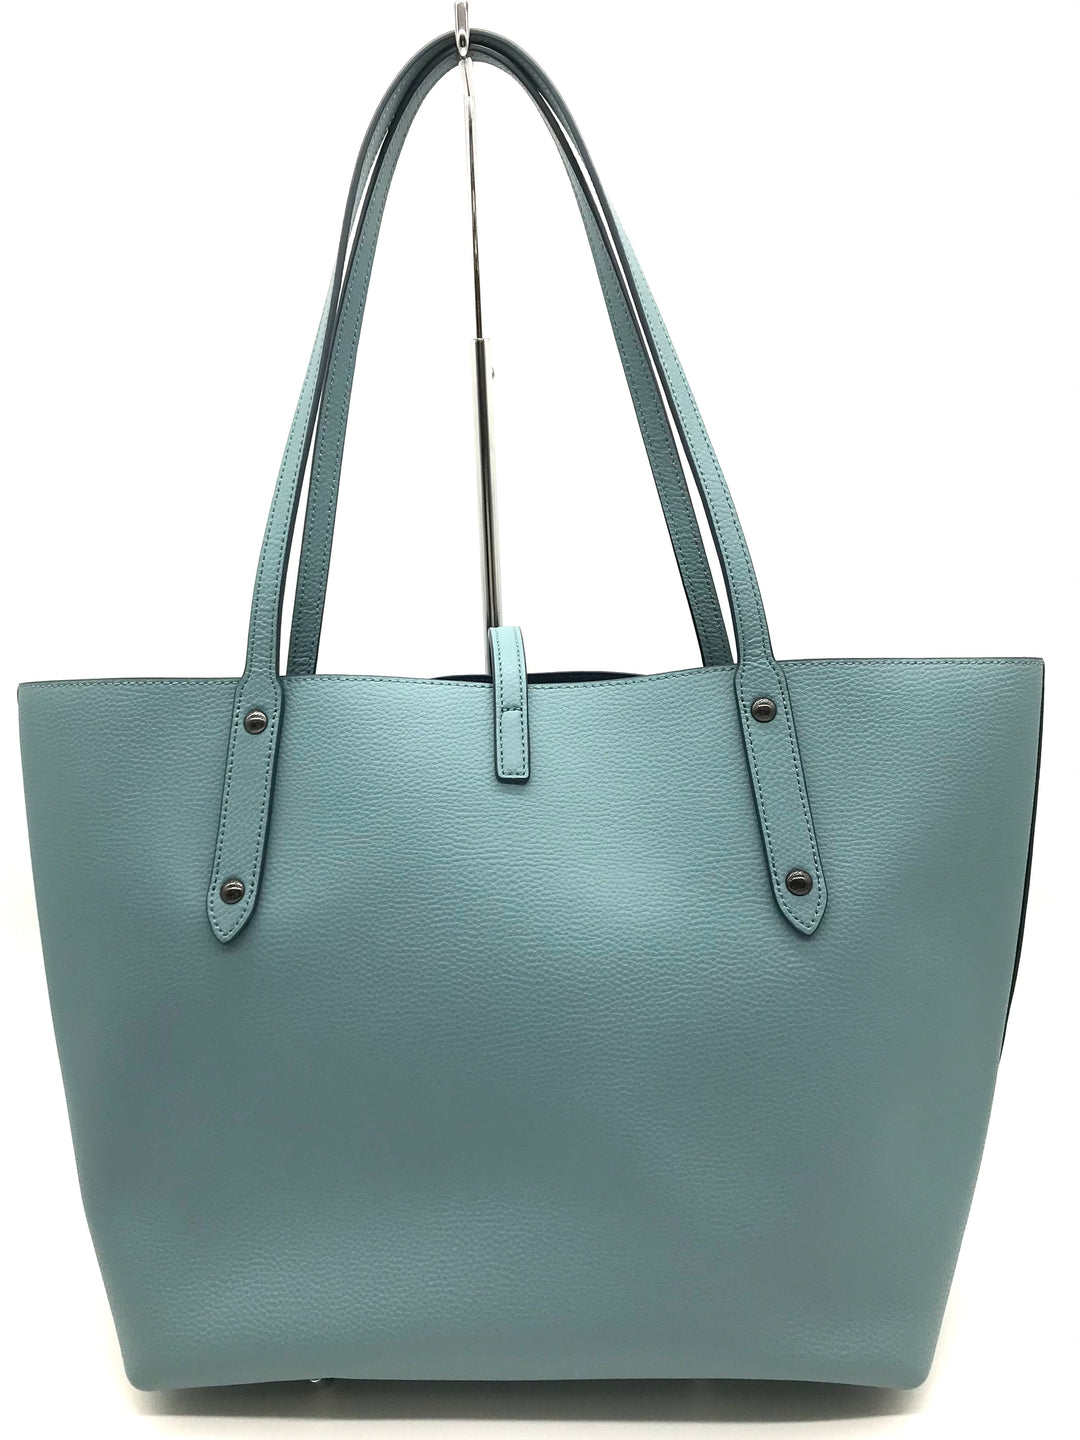 "Photo #1 - BRAND: COACH <BR>STYLE: HANDBAG DESIGNER <BR>COLOR: TEAL <BR>SIZE: LARGE 11""H X 18""L X 6.8""W<BR>HANDLE DROP: 11""<BR>SKU: 262-26241-43323<BR>LIKE NEW CONDITION"